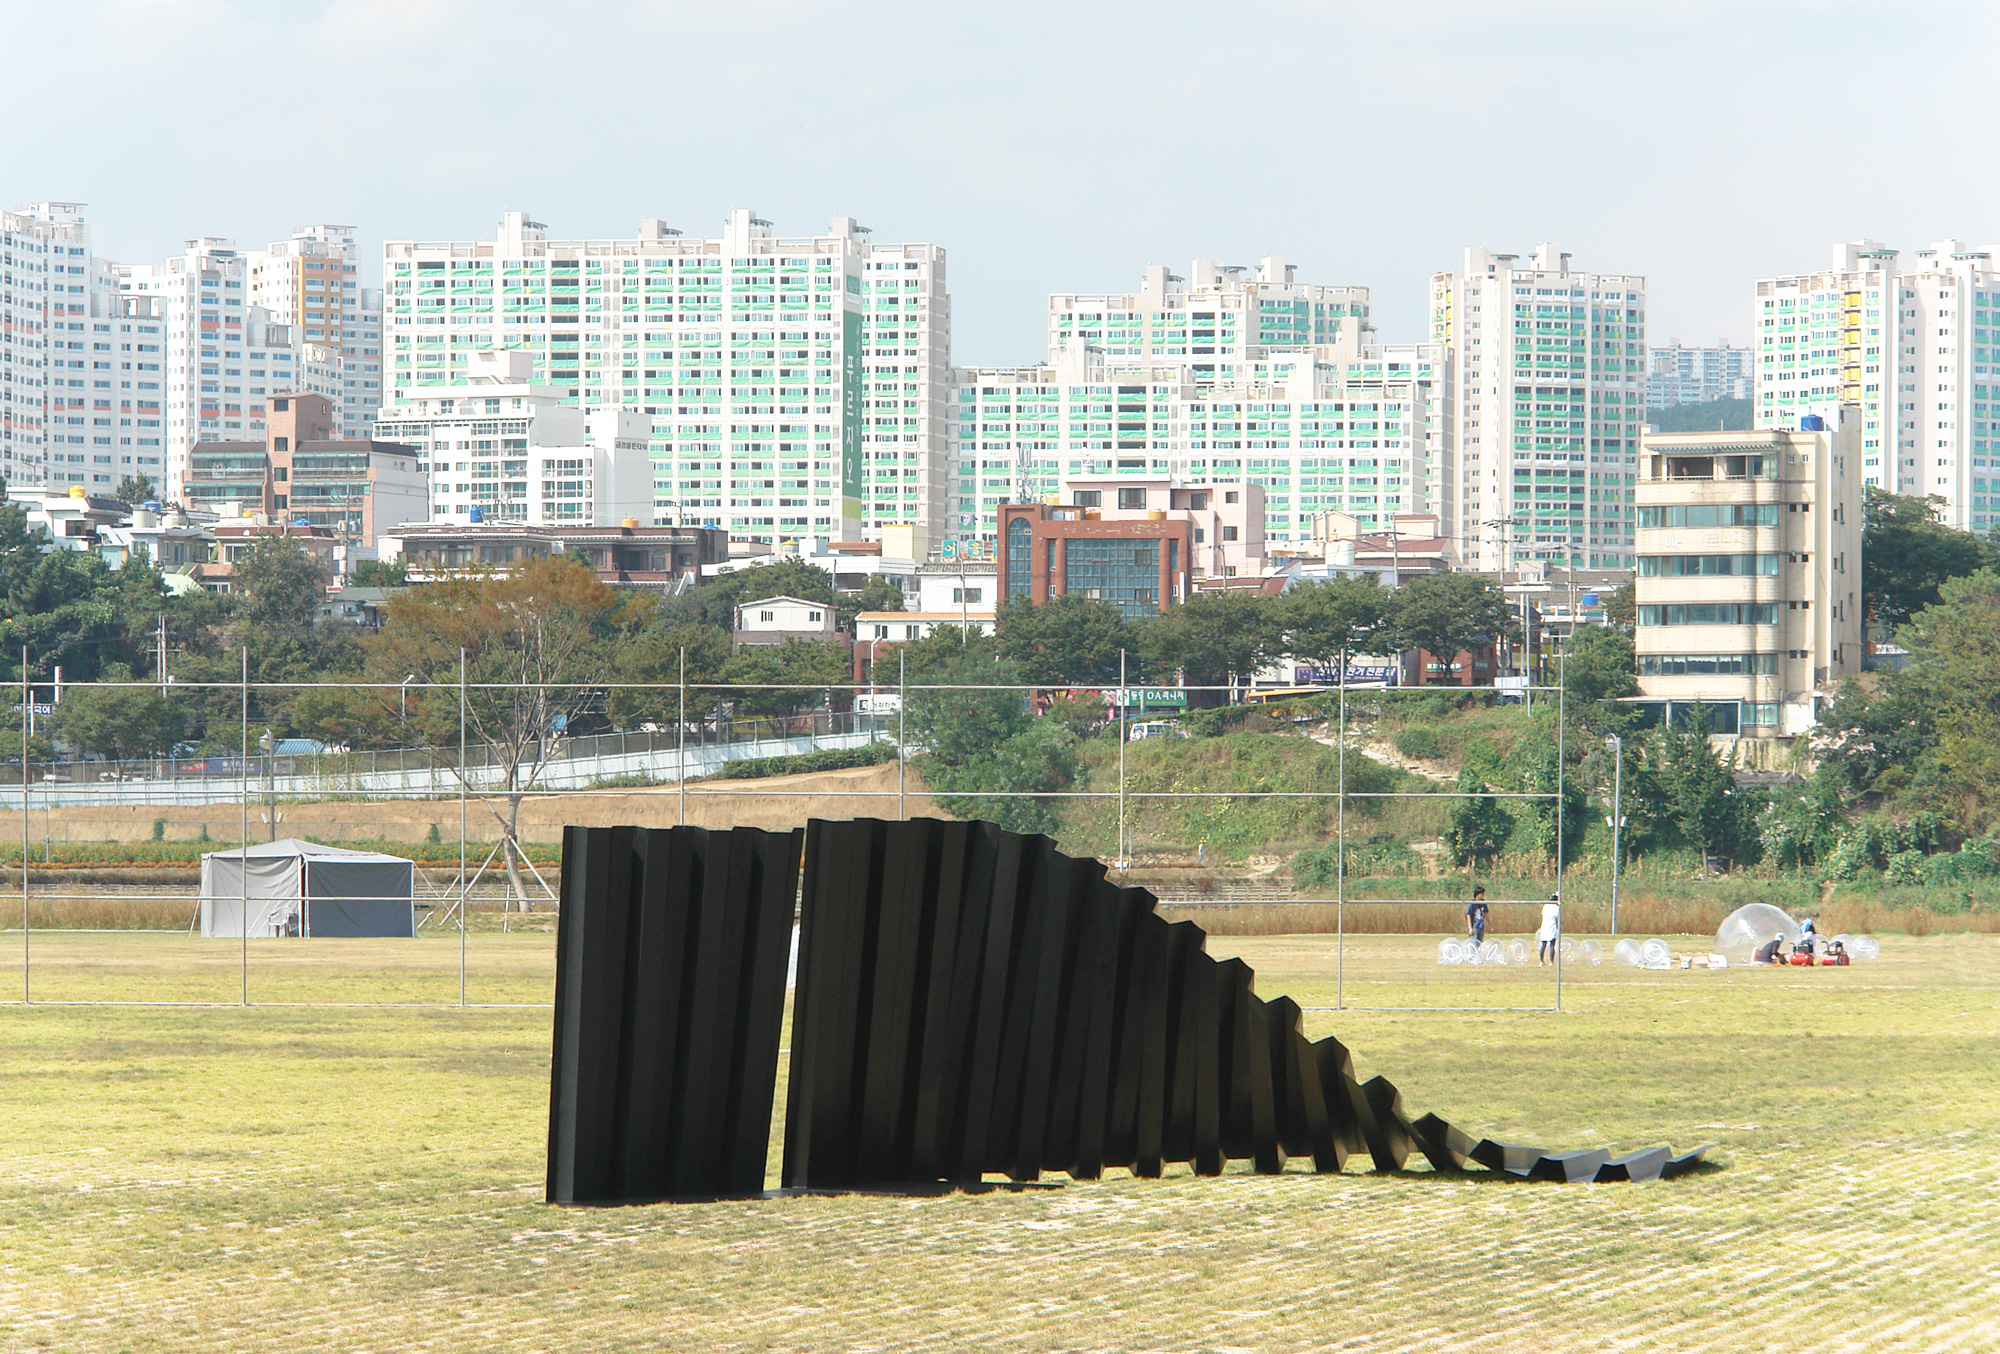 Move in Ulsan City, South Korea (2009)